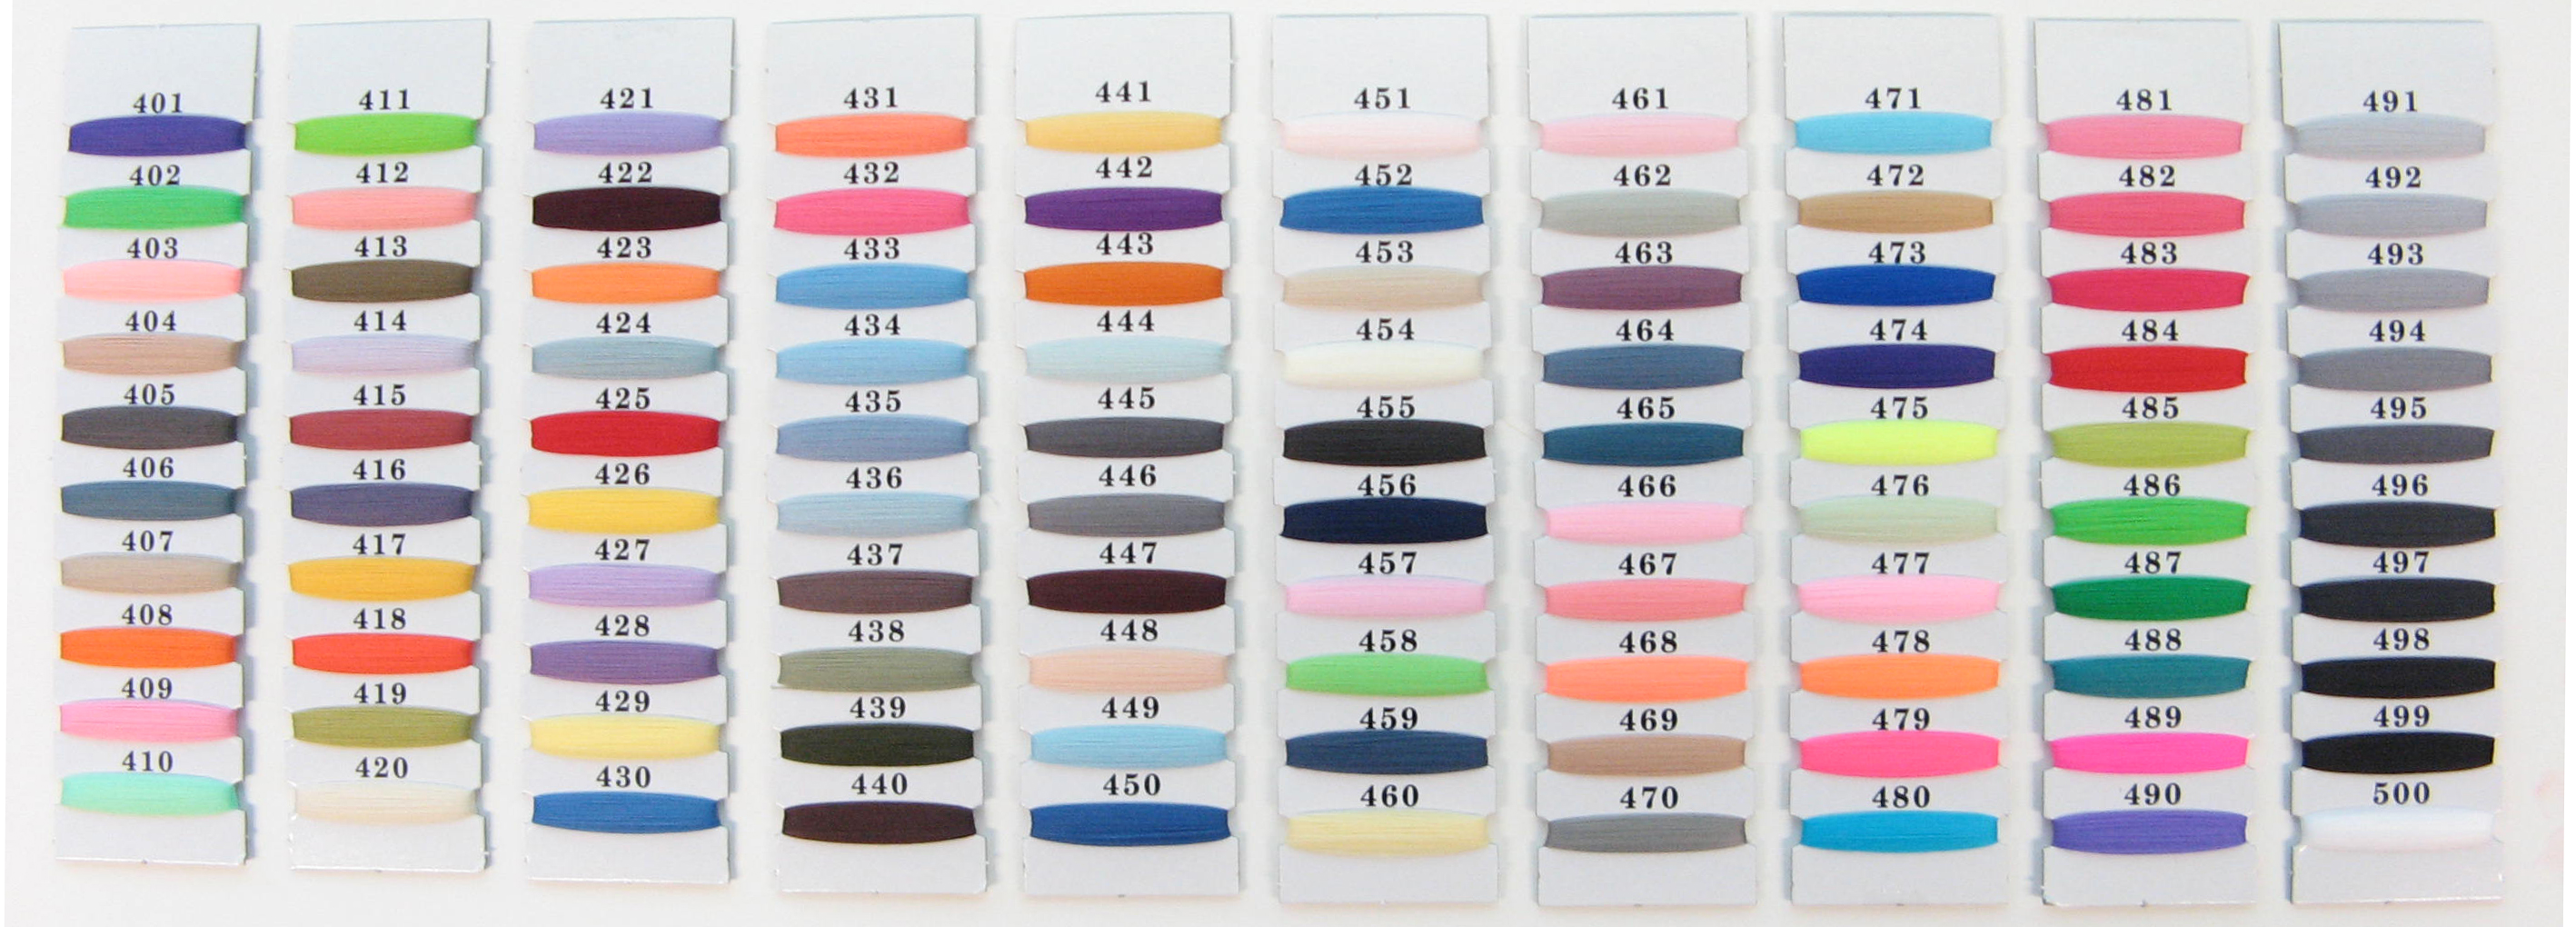 100 color codes html color codes indie hackerscolors for nylon color codes charts for oem production manufacturer u0027s color nvjuhfo Choice Image